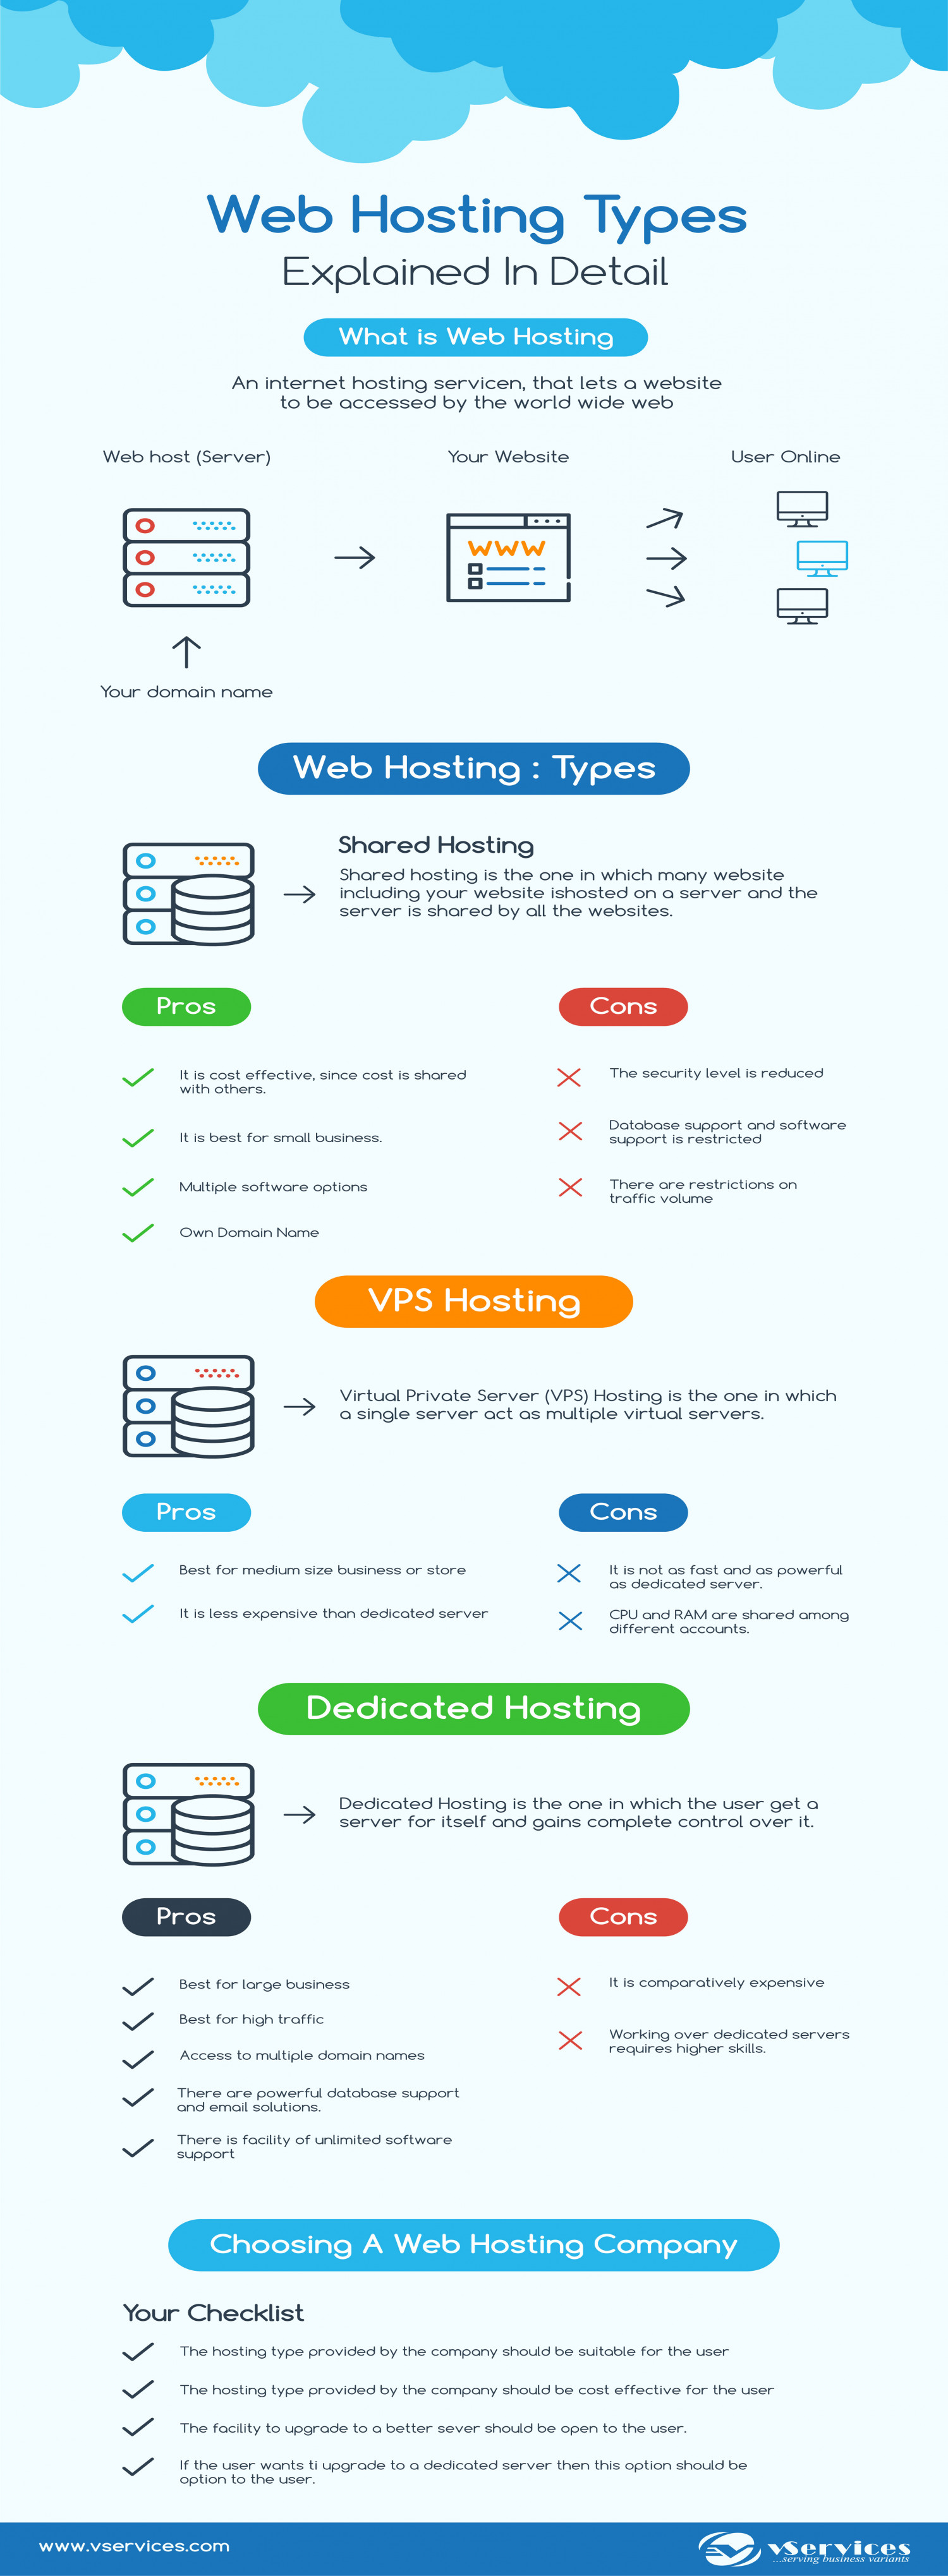 Web hosting Types Explained in Detail Infographic